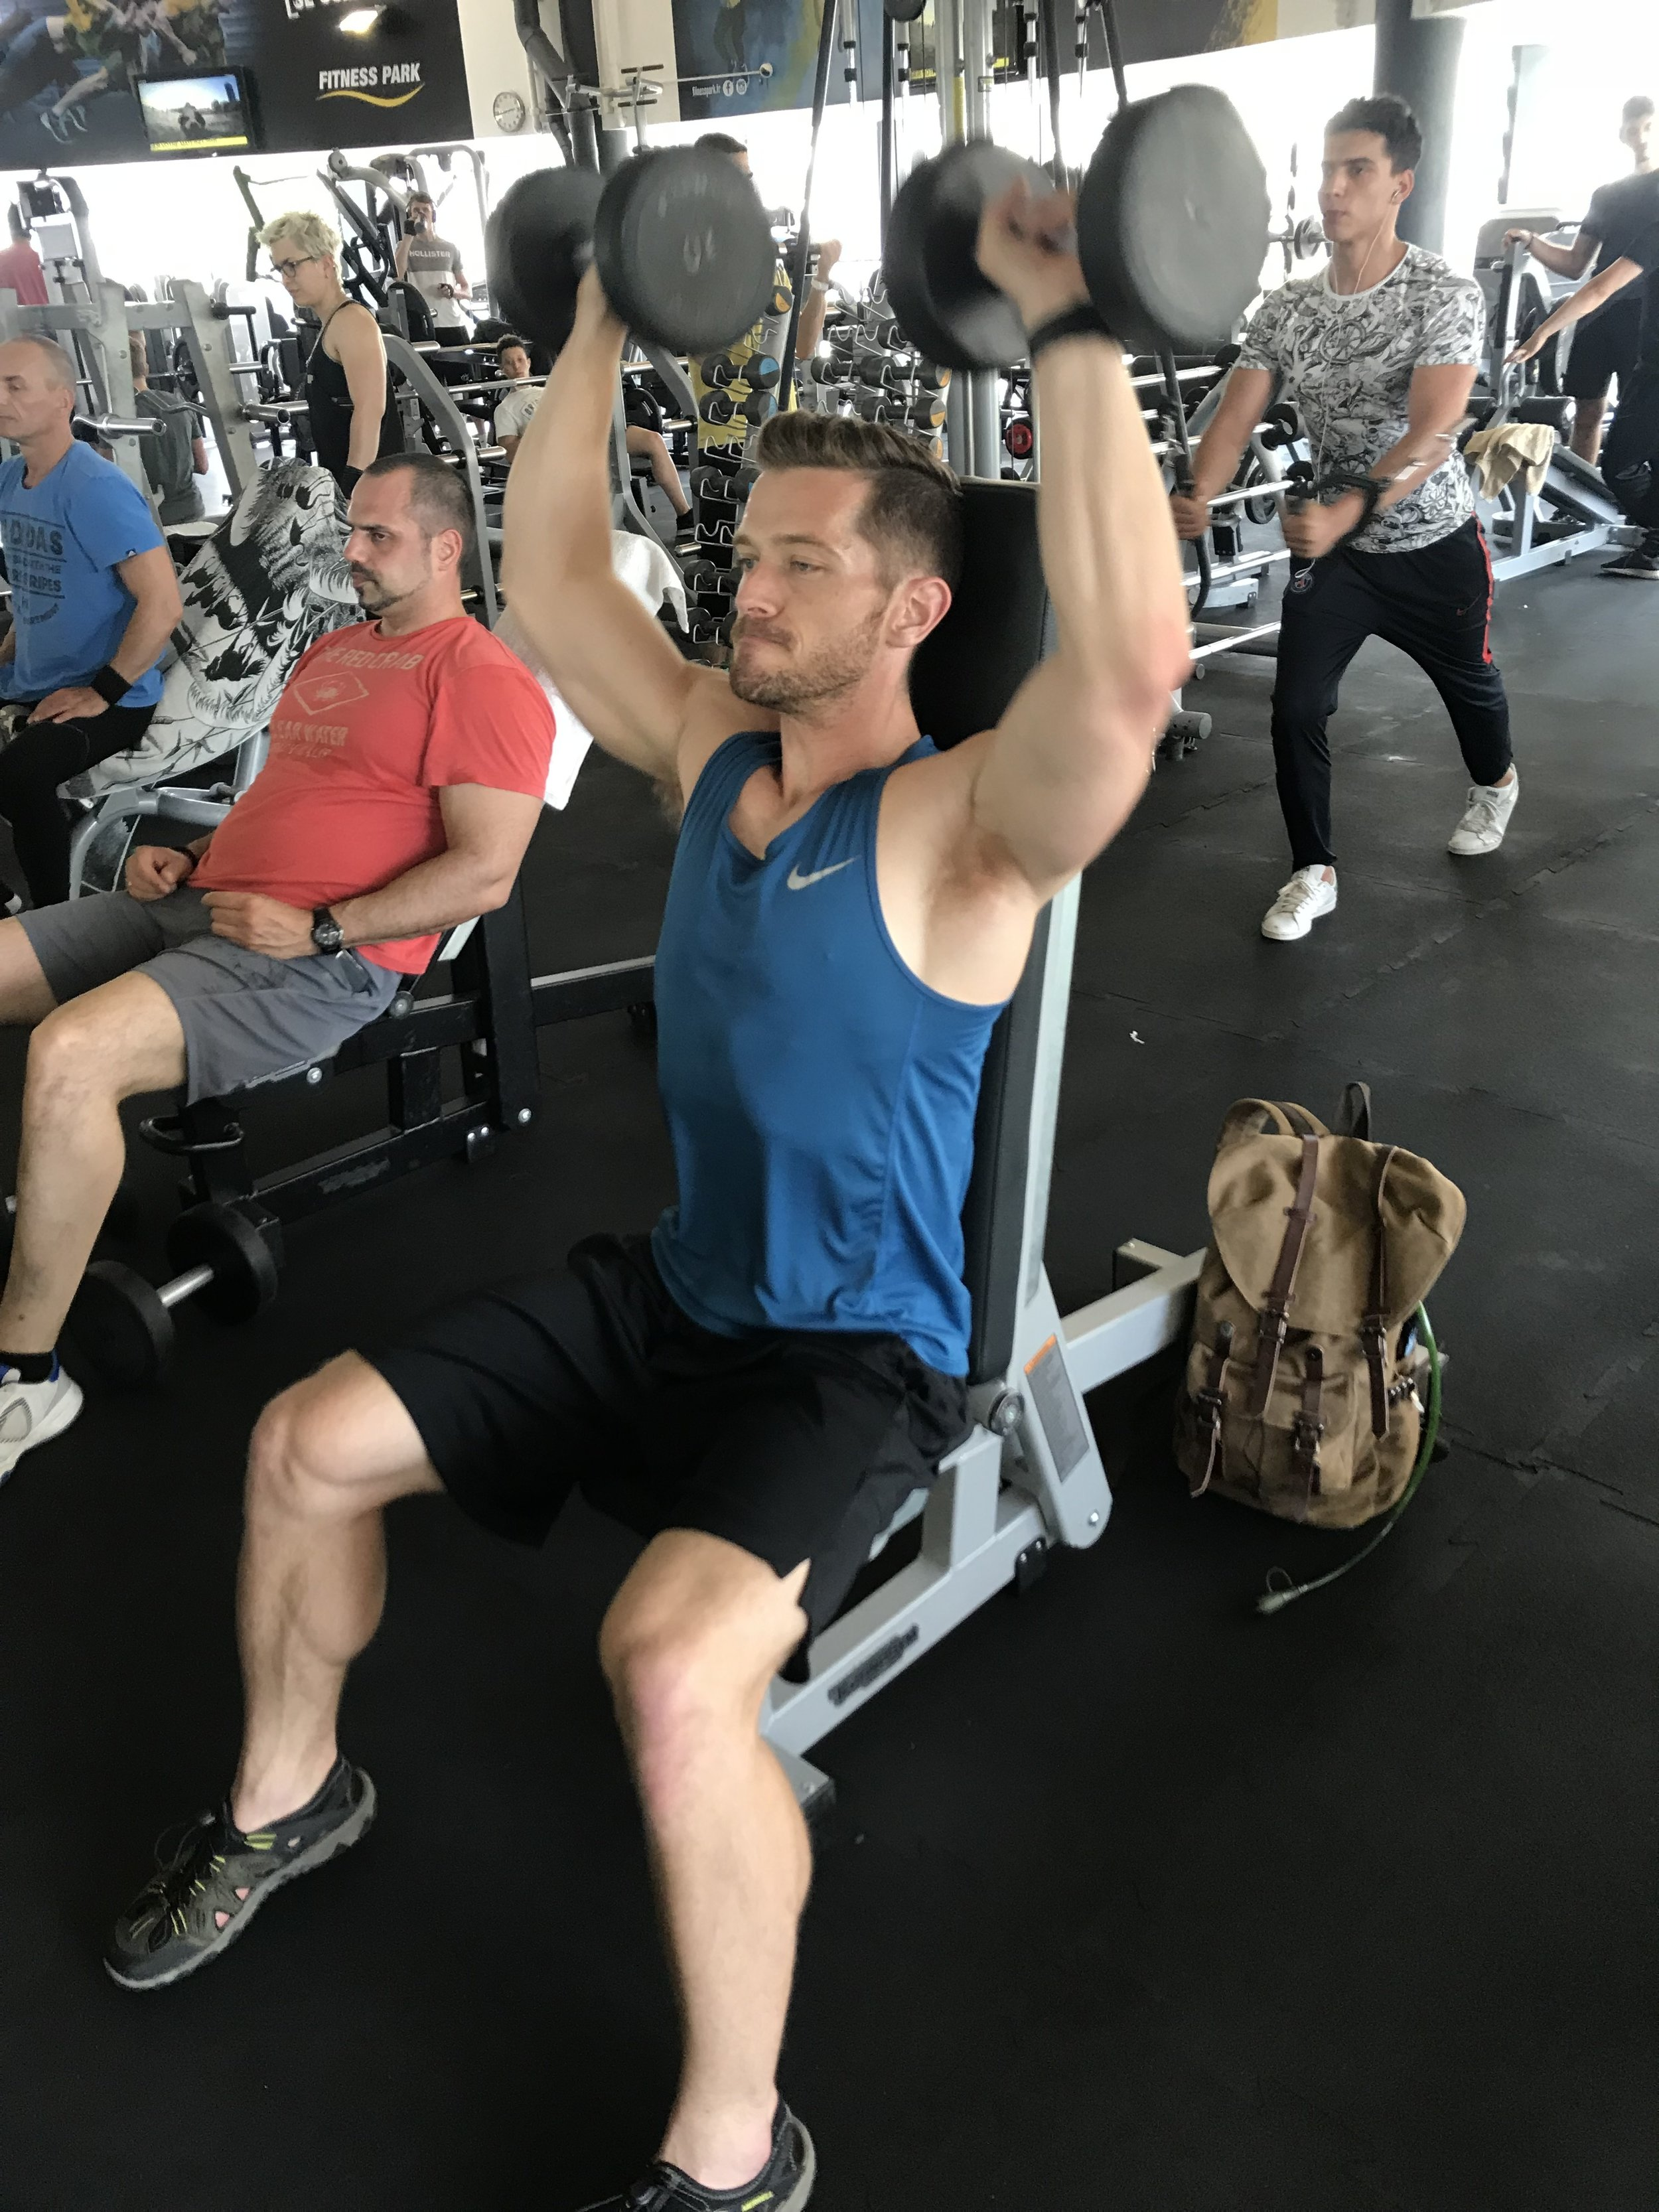 SEATED SHOULDER PRESS